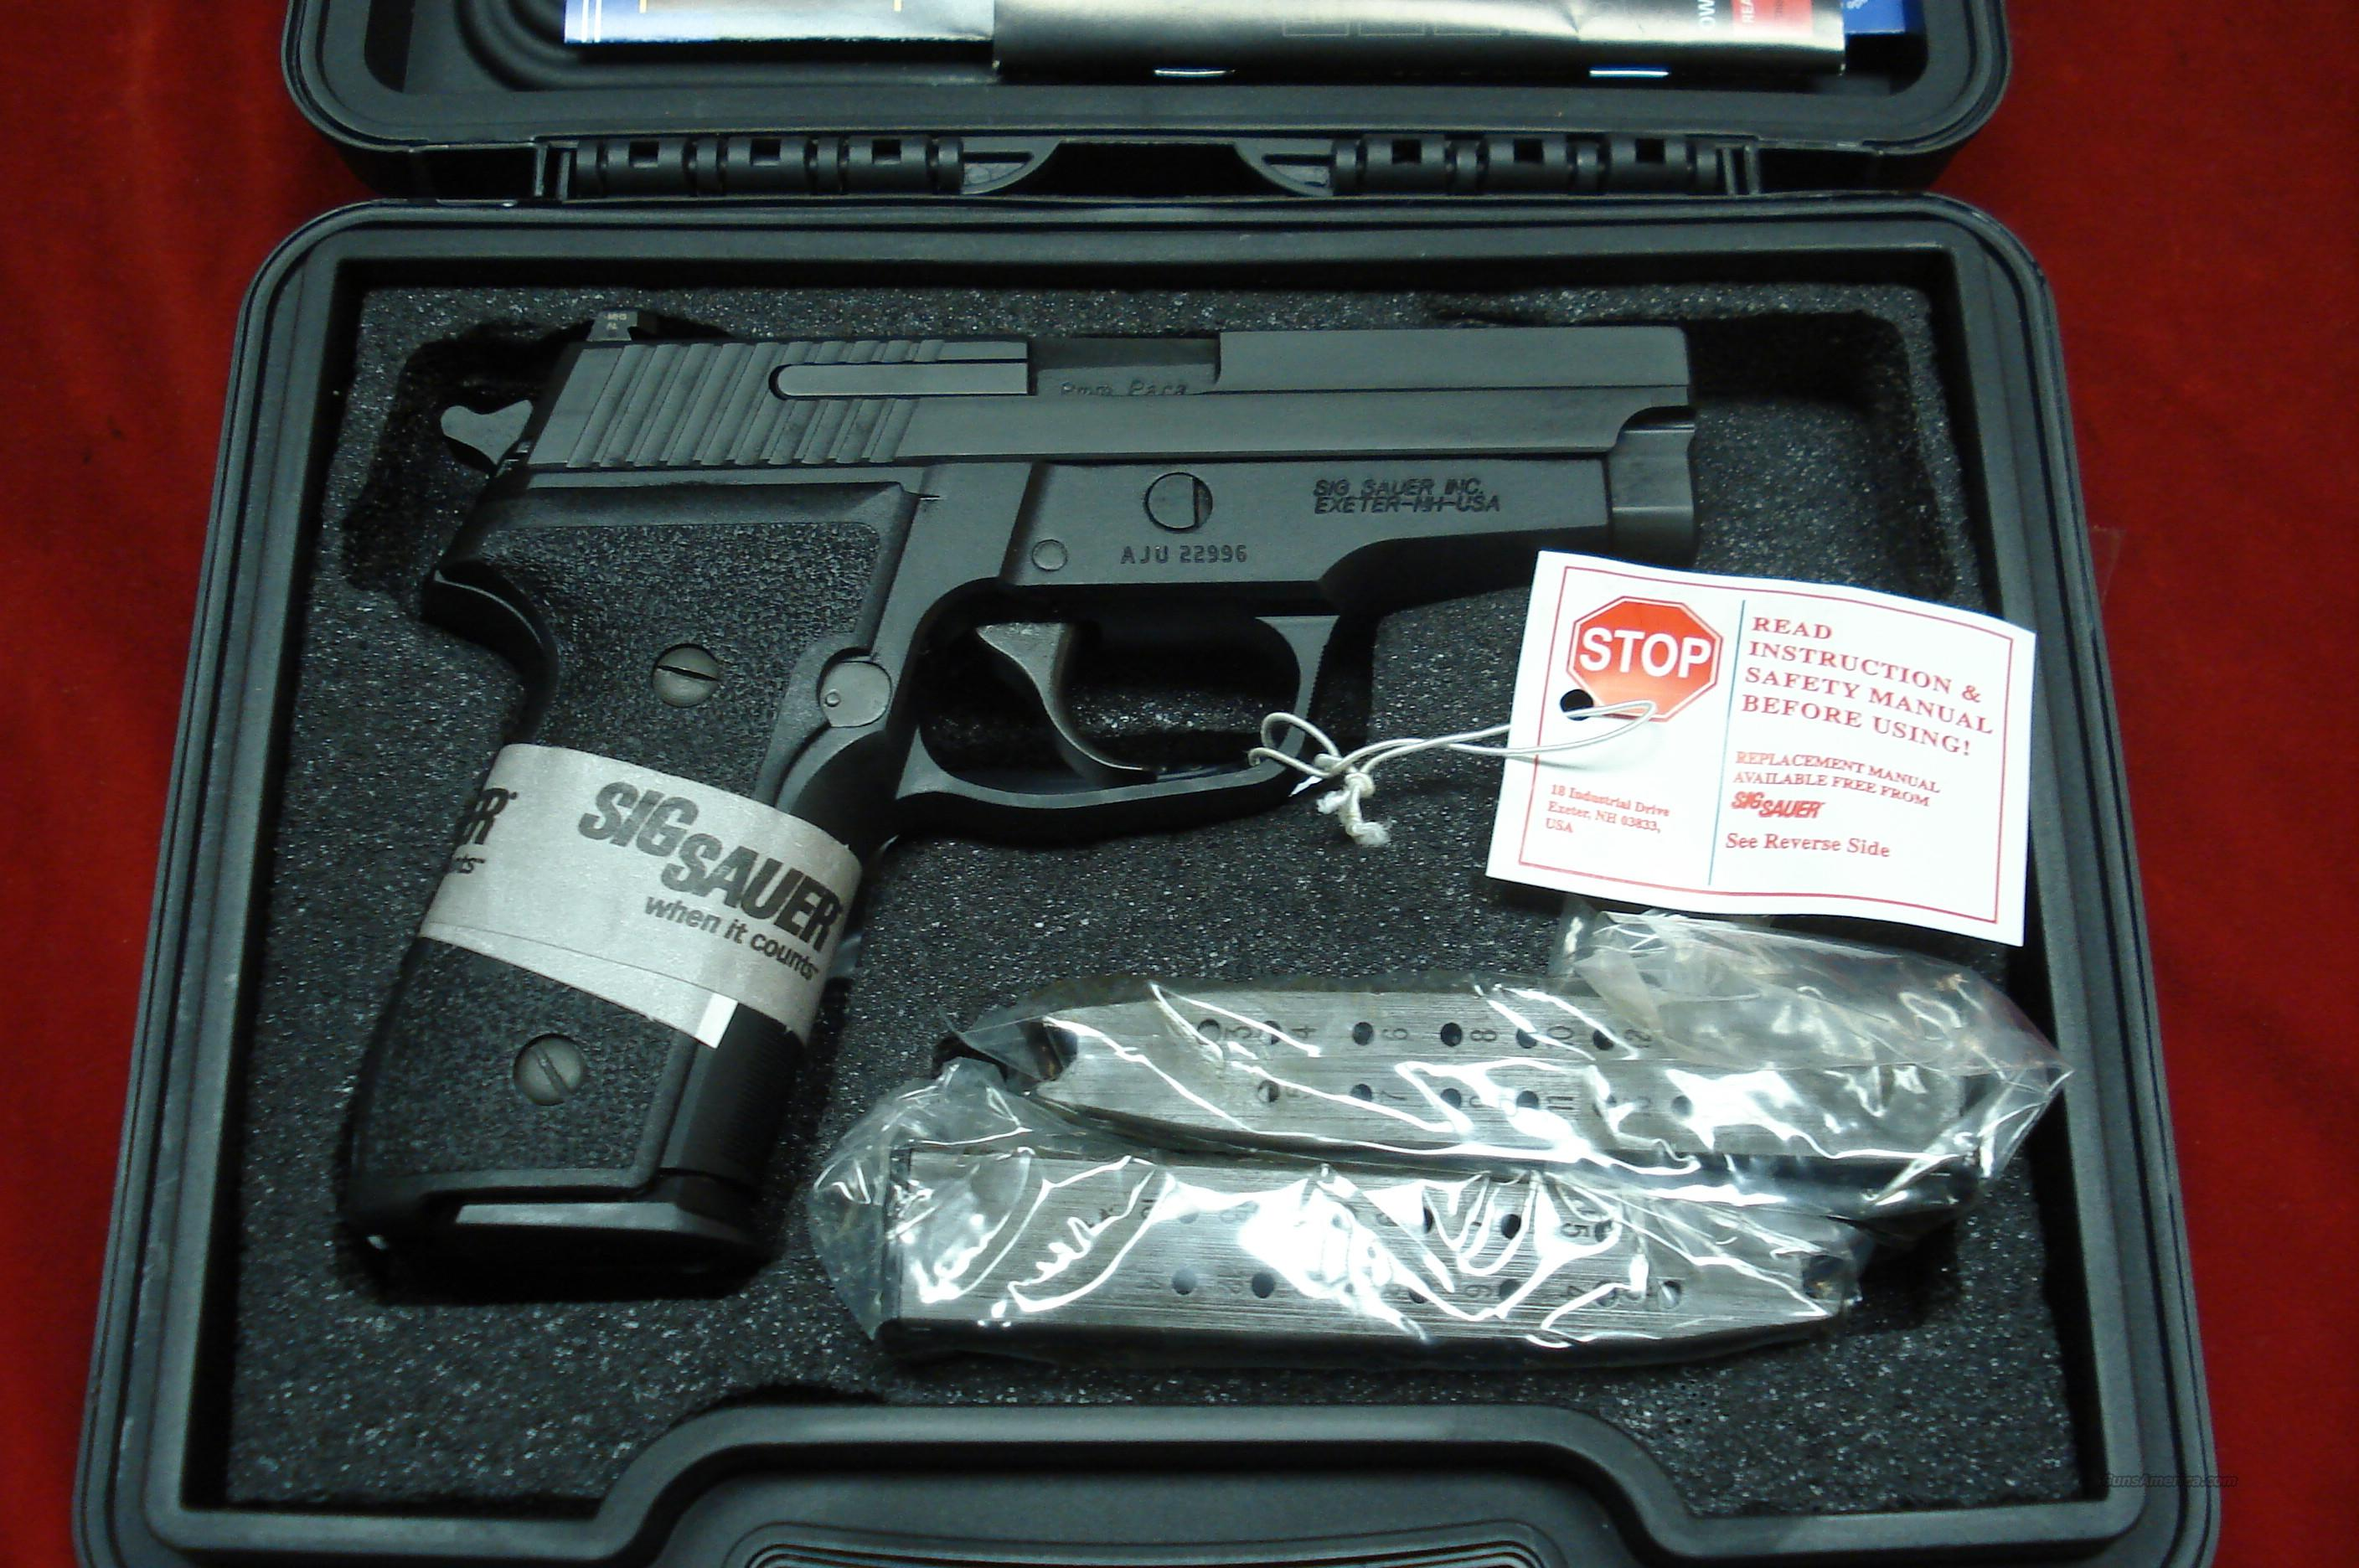 SIG SAUER M11-A1 P228 9MM WITH NIGHT SIGHTS AND HIGH CAP MAGAZINES NEW  Guns > Pistols > Sig - Sauer/Sigarms Pistols > P228